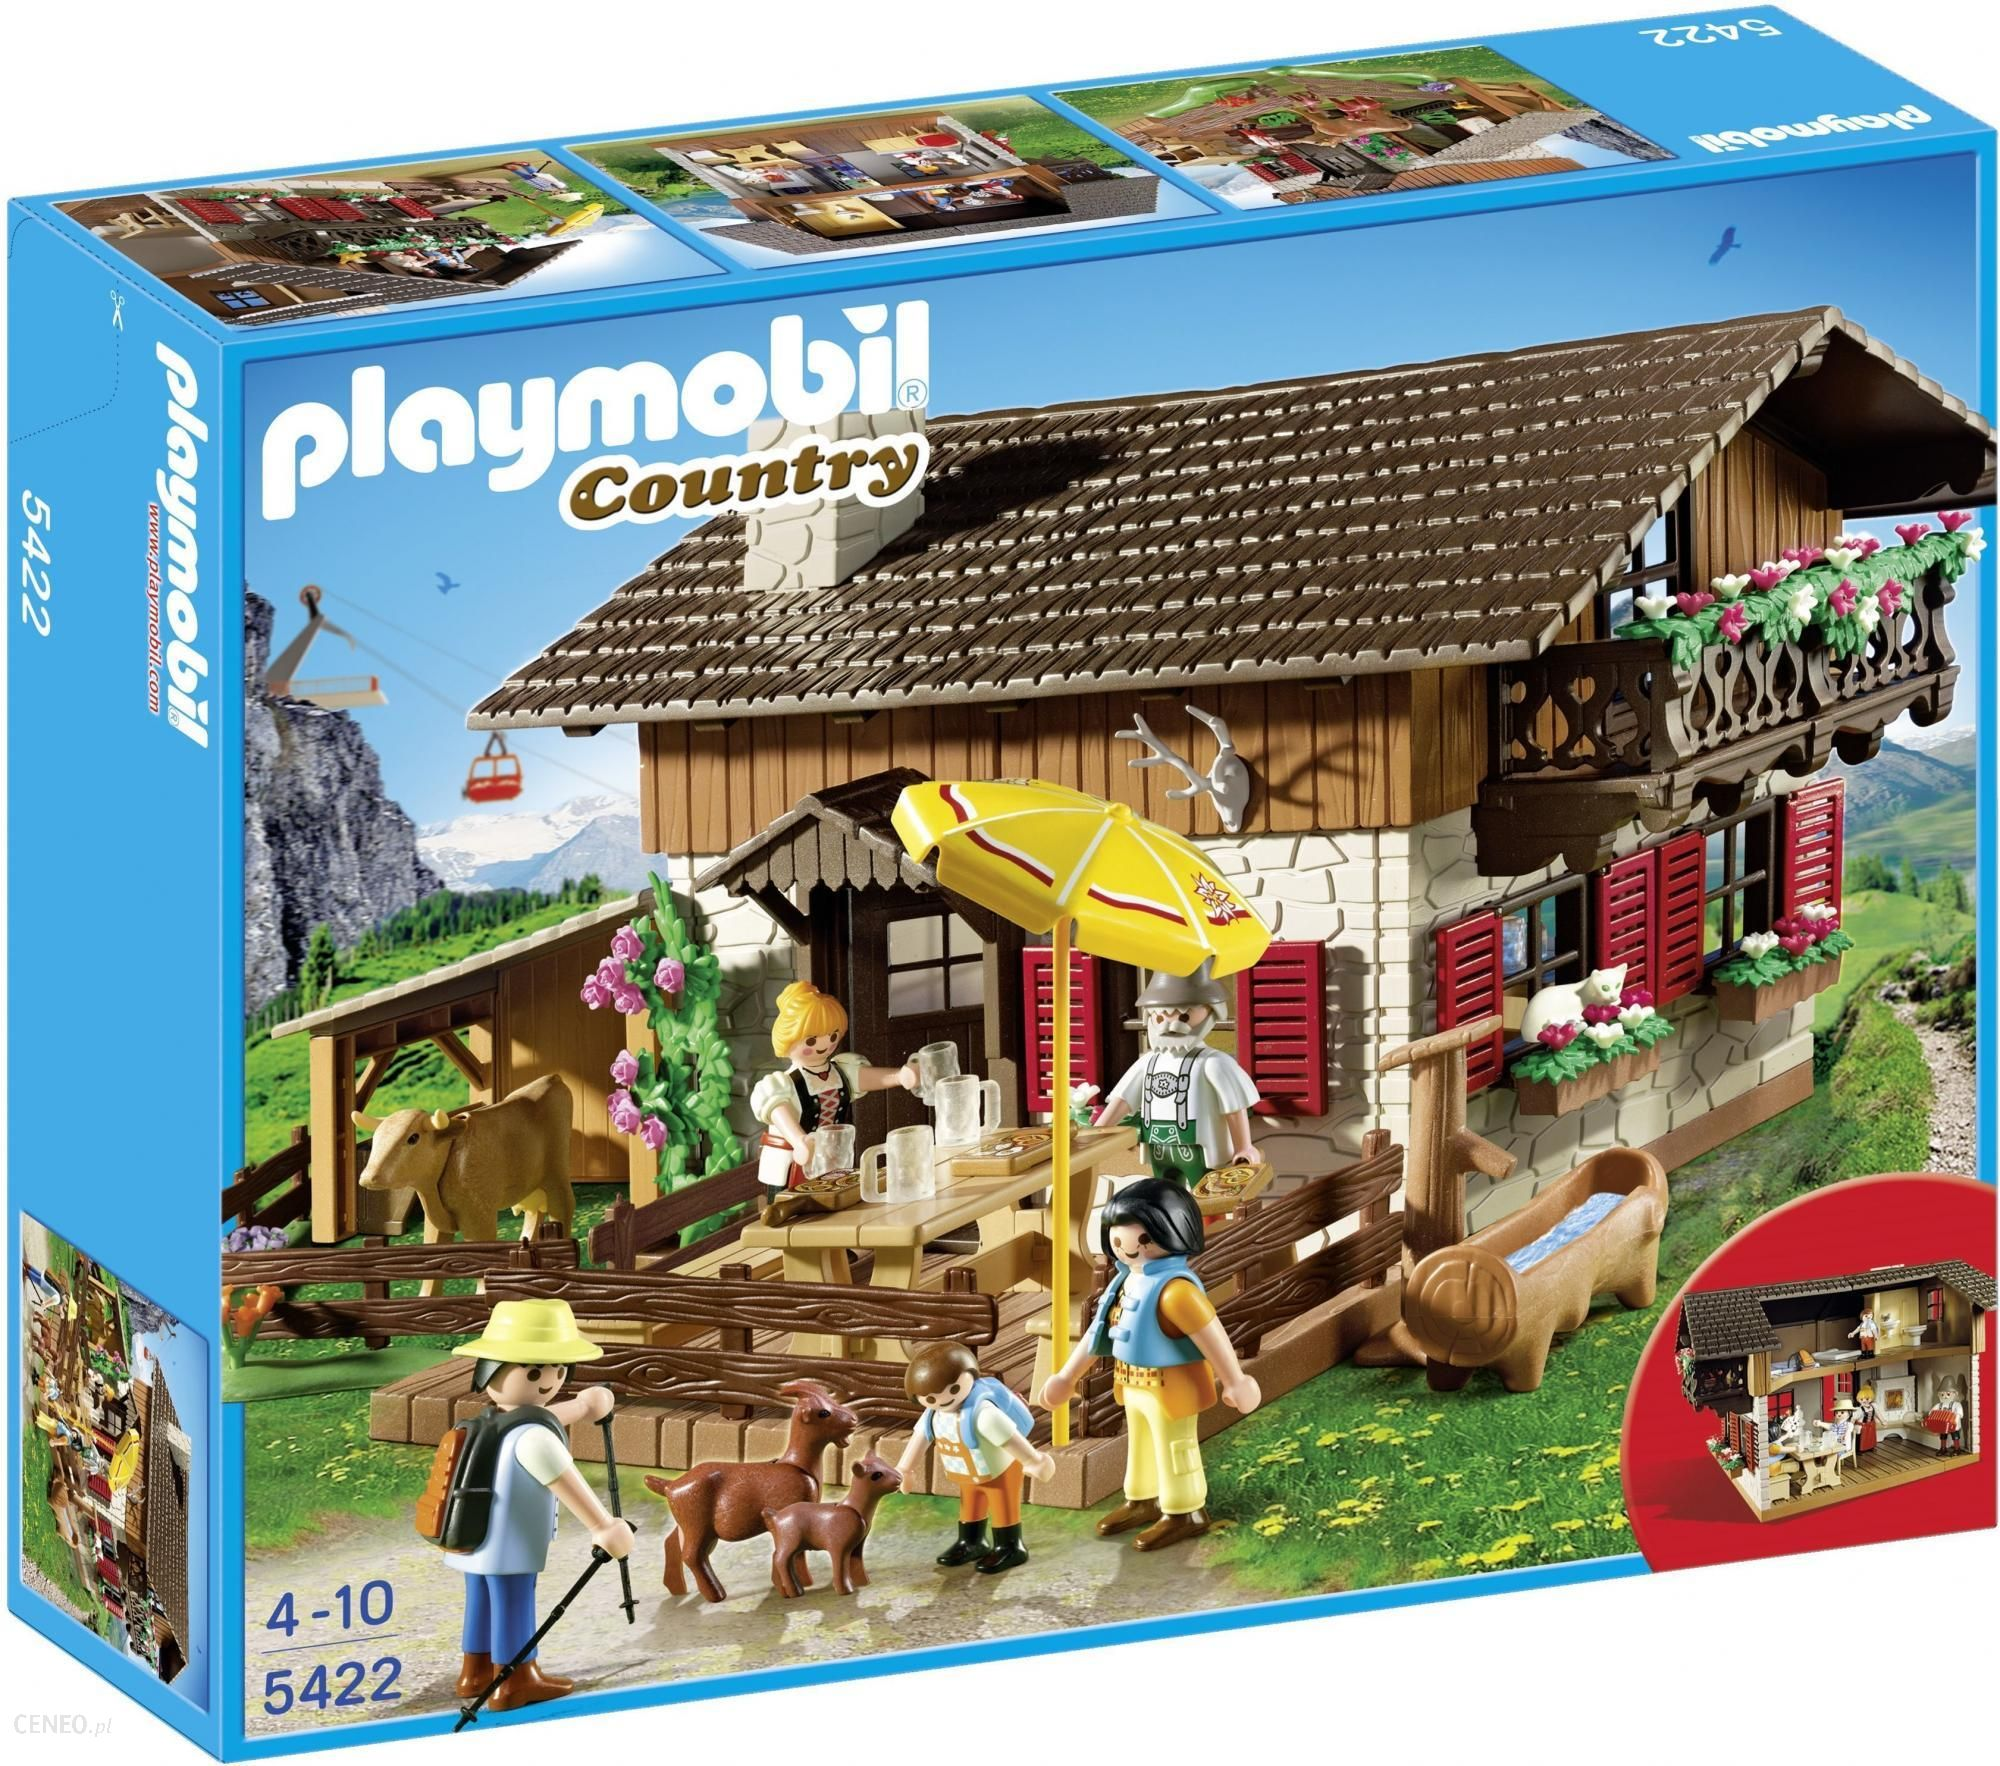 Playmobil Chata Country 5422